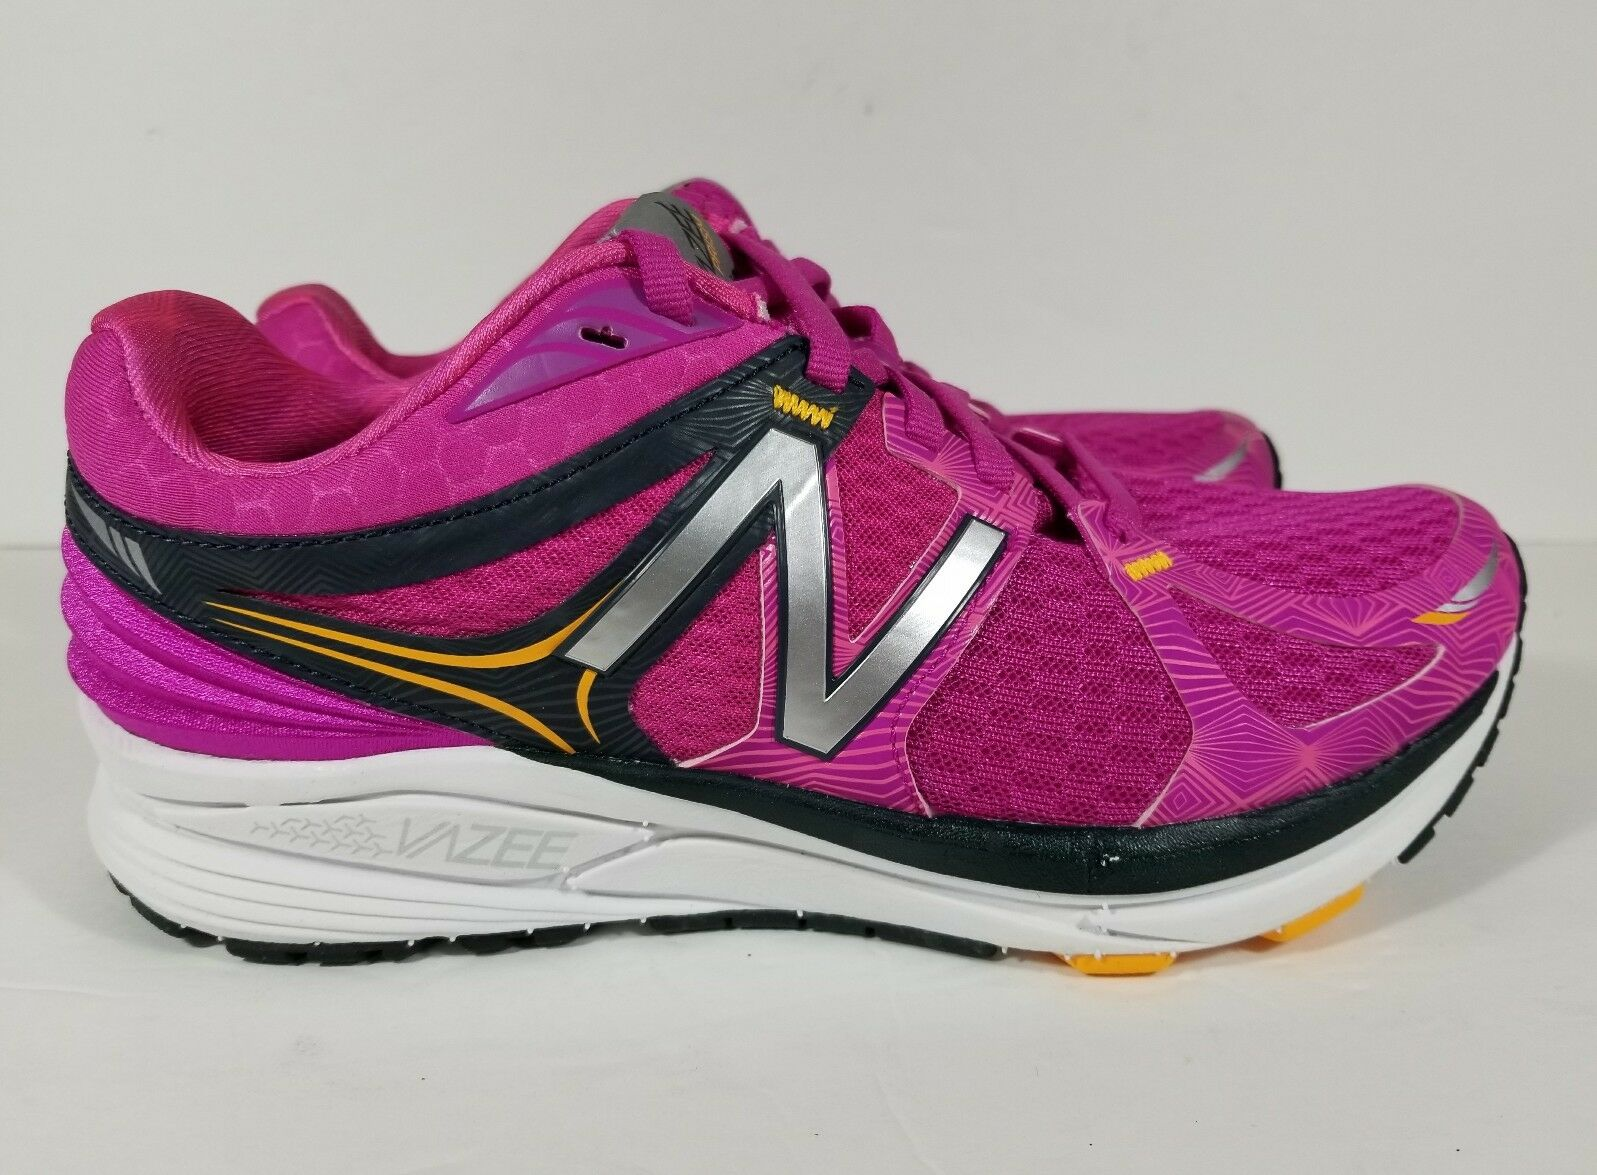 Ladies New Balance WPRSMPB Vazee Prism Pink Mesh Running Shoes Size 6 Wide New